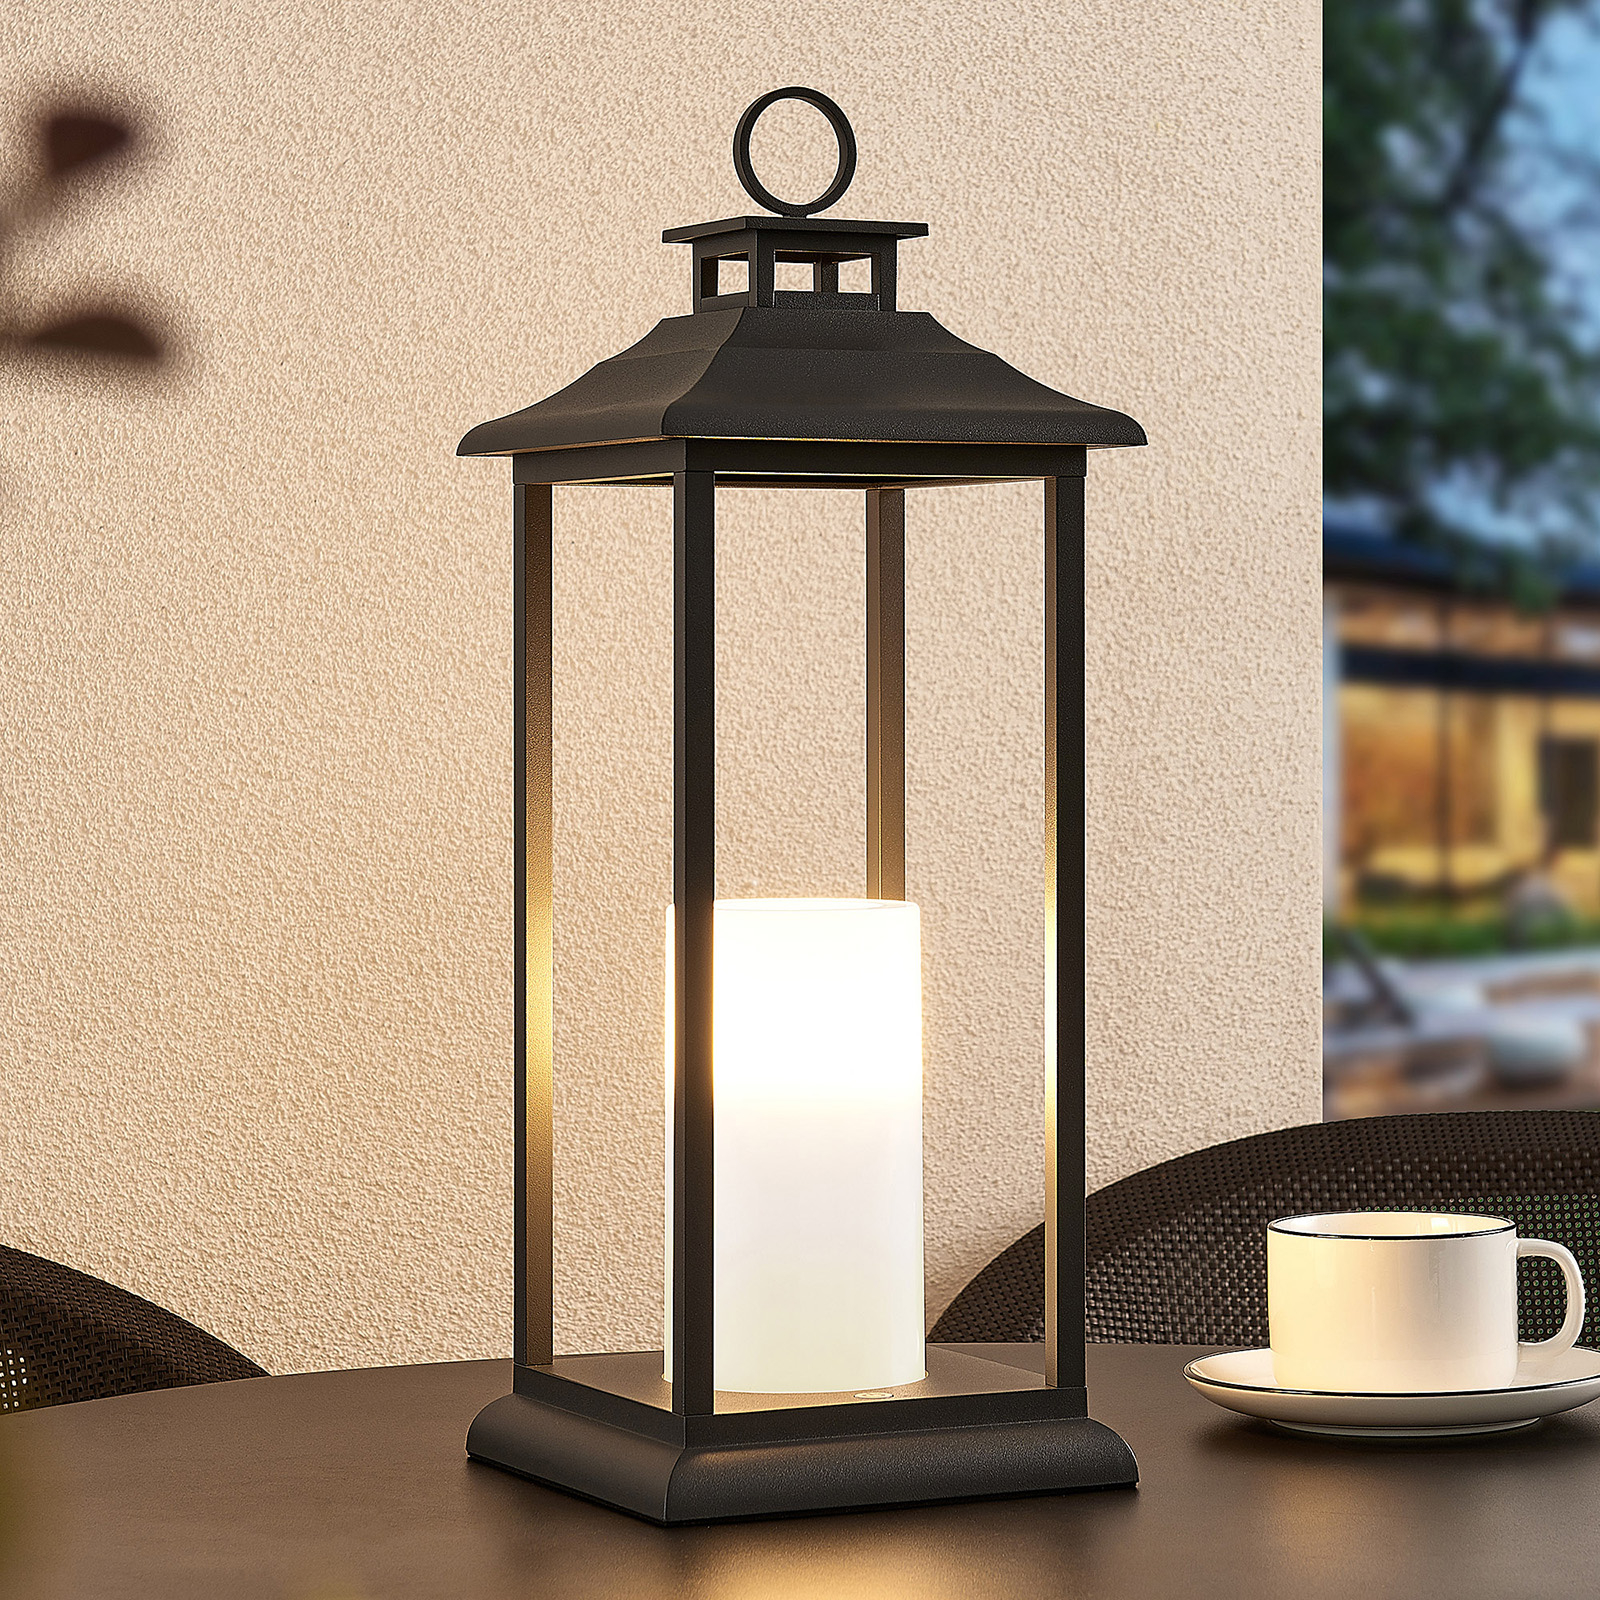 Lucande Vadik LED outdoor lantern_9616177_1